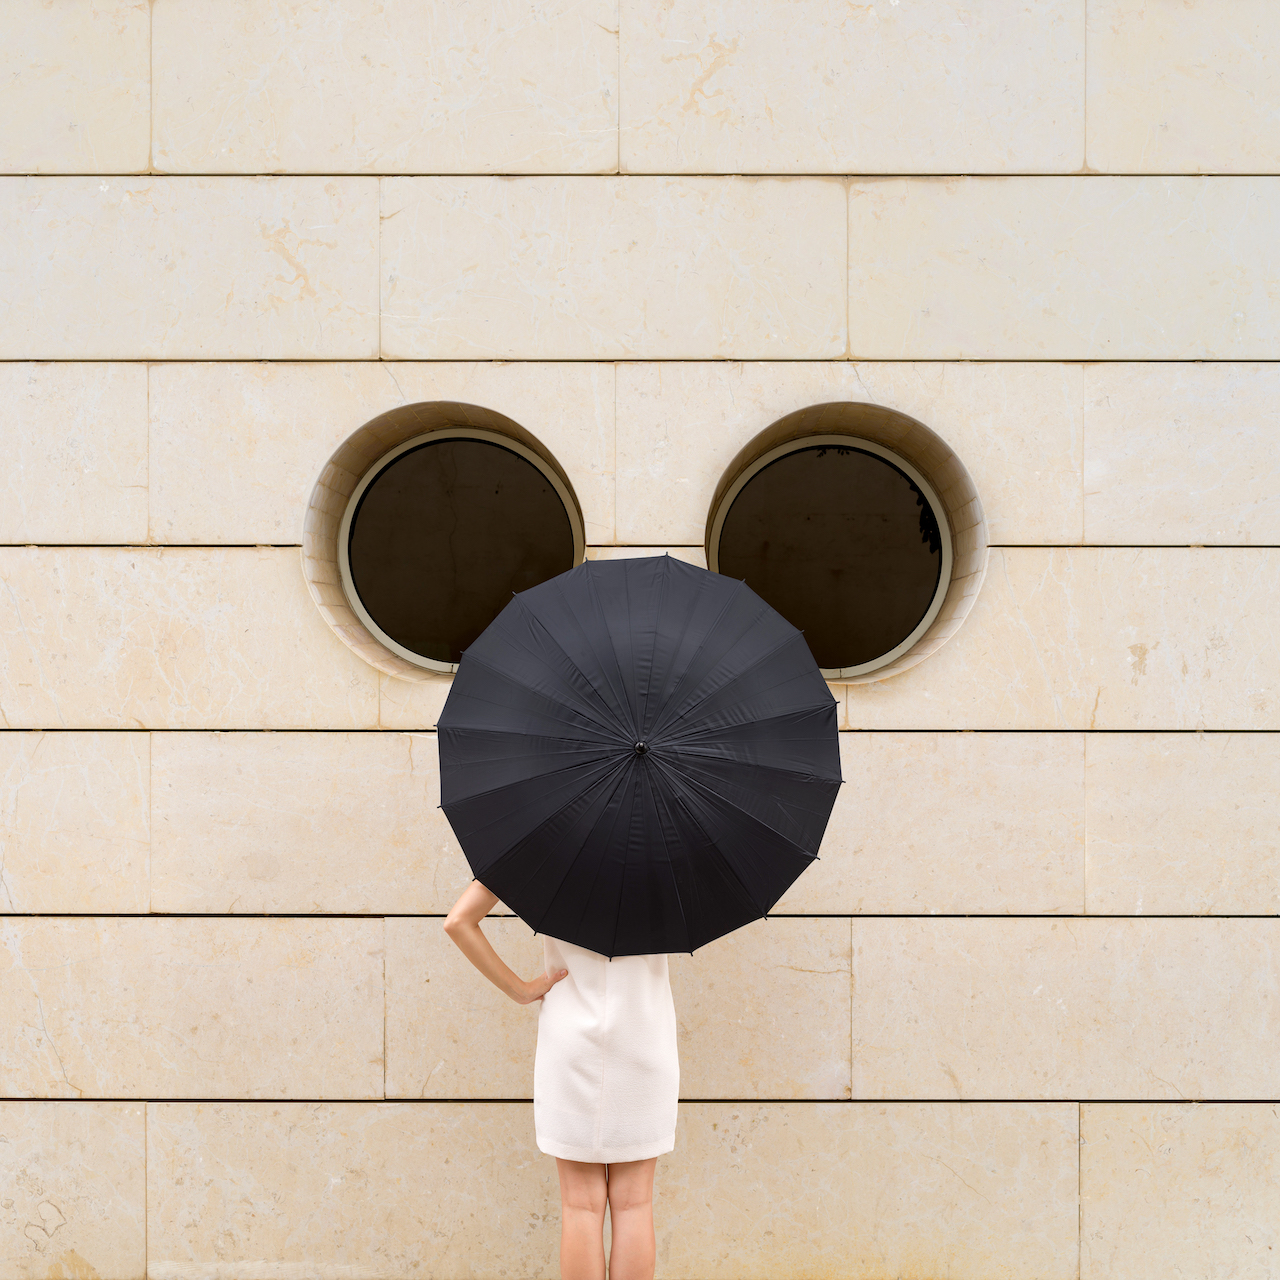 Annandaniel Anniset DrCuerda Creative Influencer campaign Disney Mickey Mouse 90 Anniversary Wall Disney